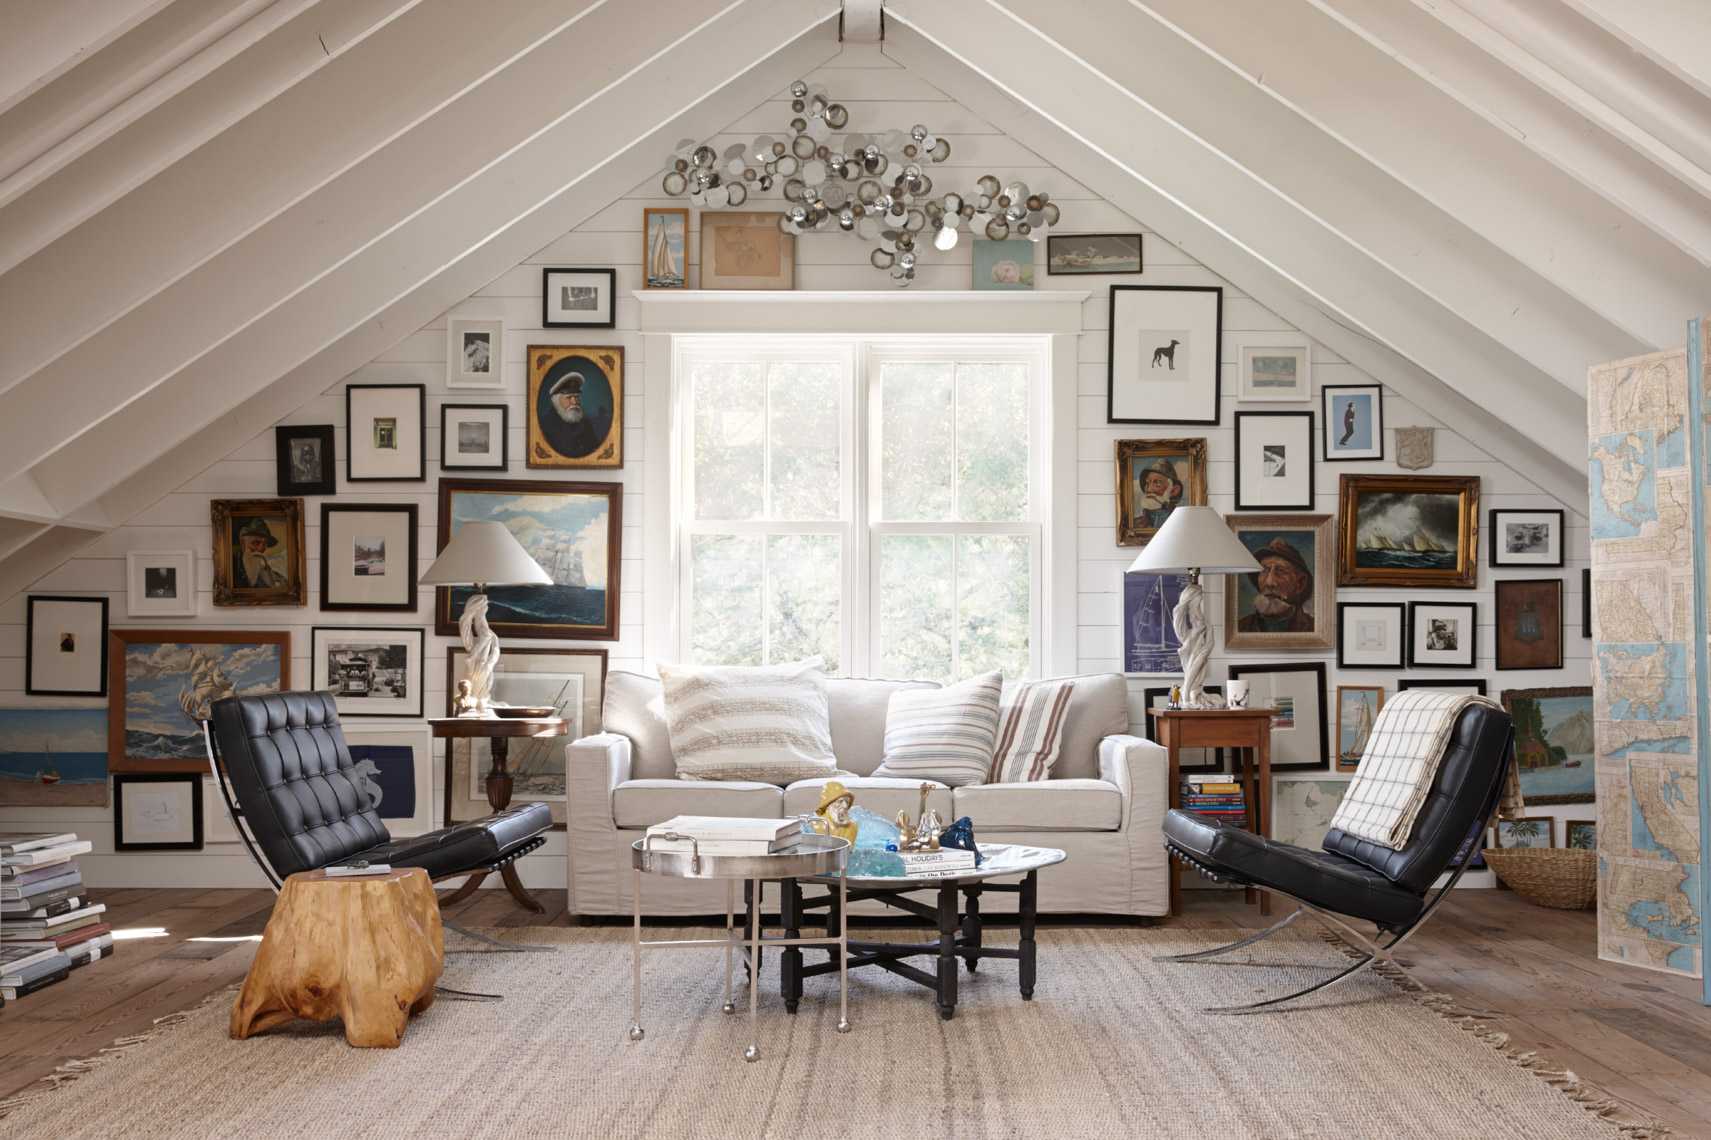 home attic a-frame living space with window and framed pictures on wall and white sofa between 2 black chairs